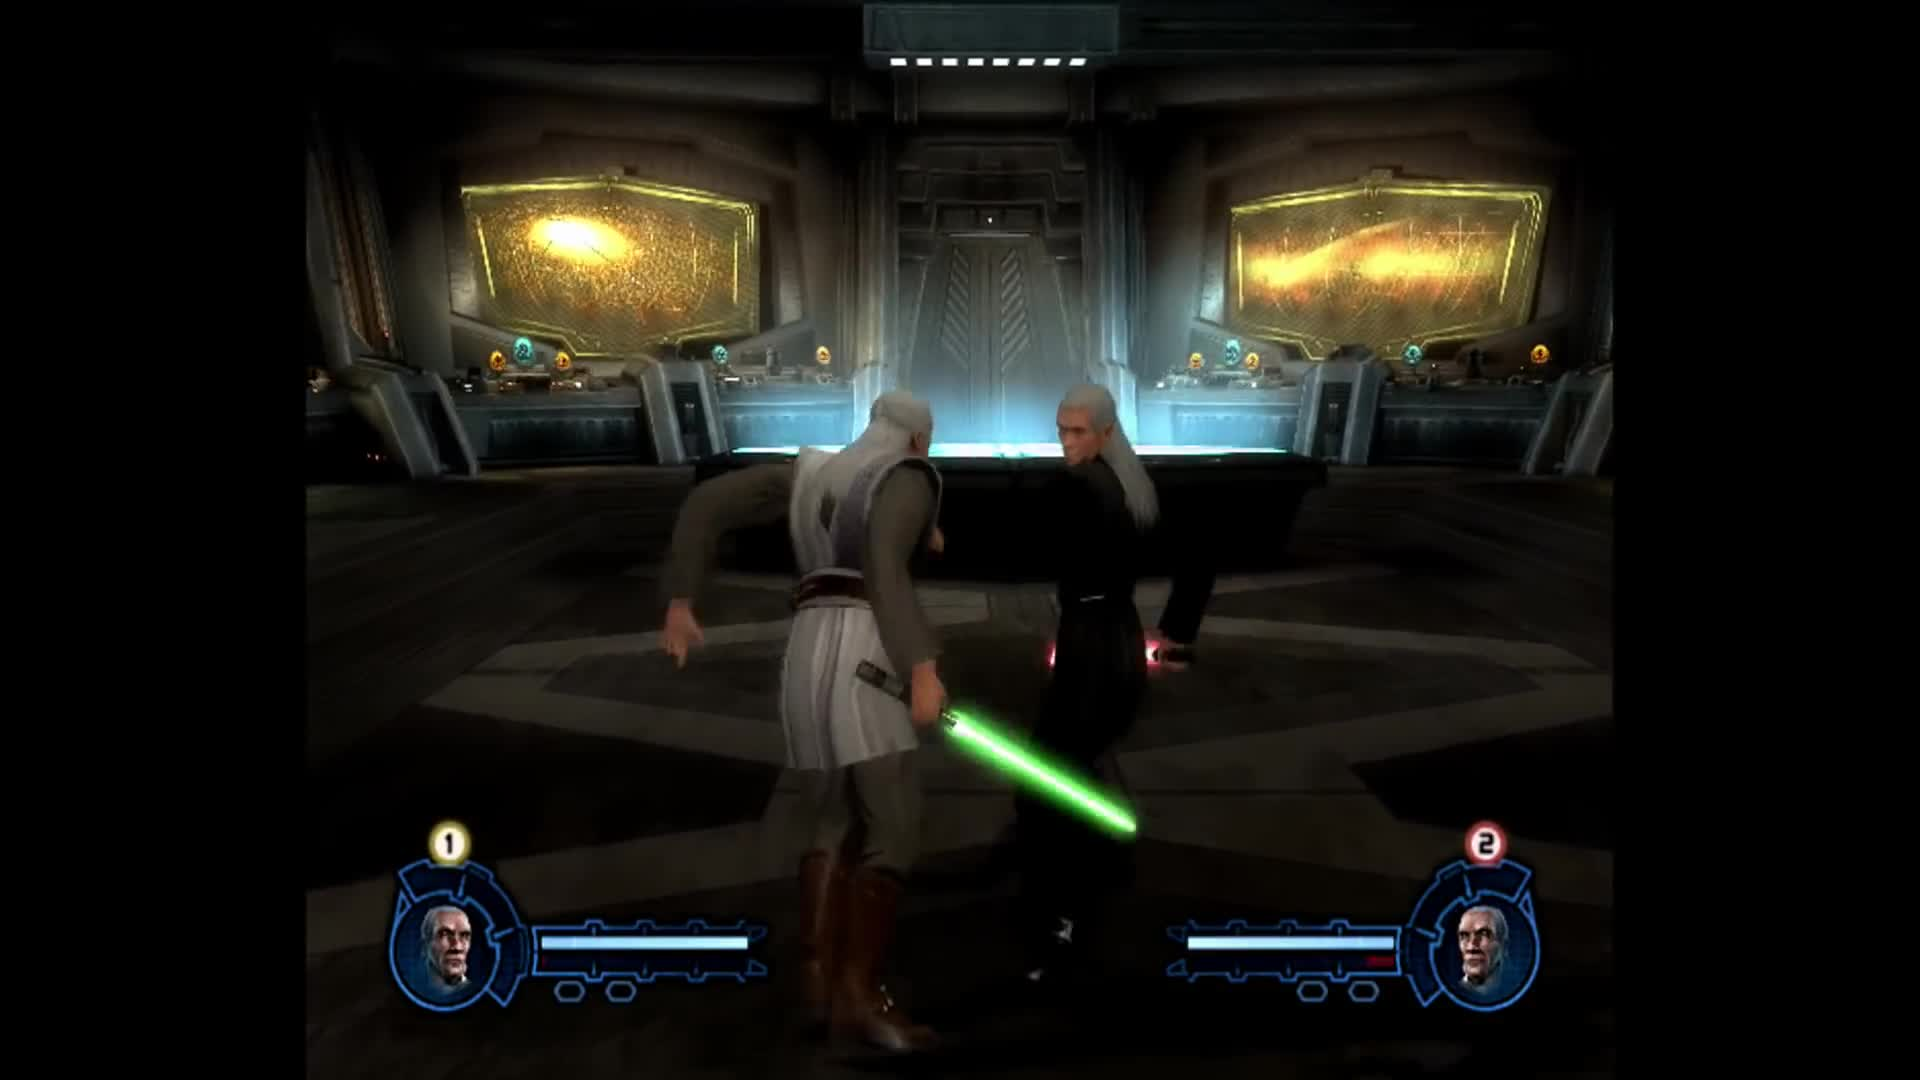 Remade Revenge Of The Sith Xbox All Mirror Matches Alternate Timeline Cos Gfycat